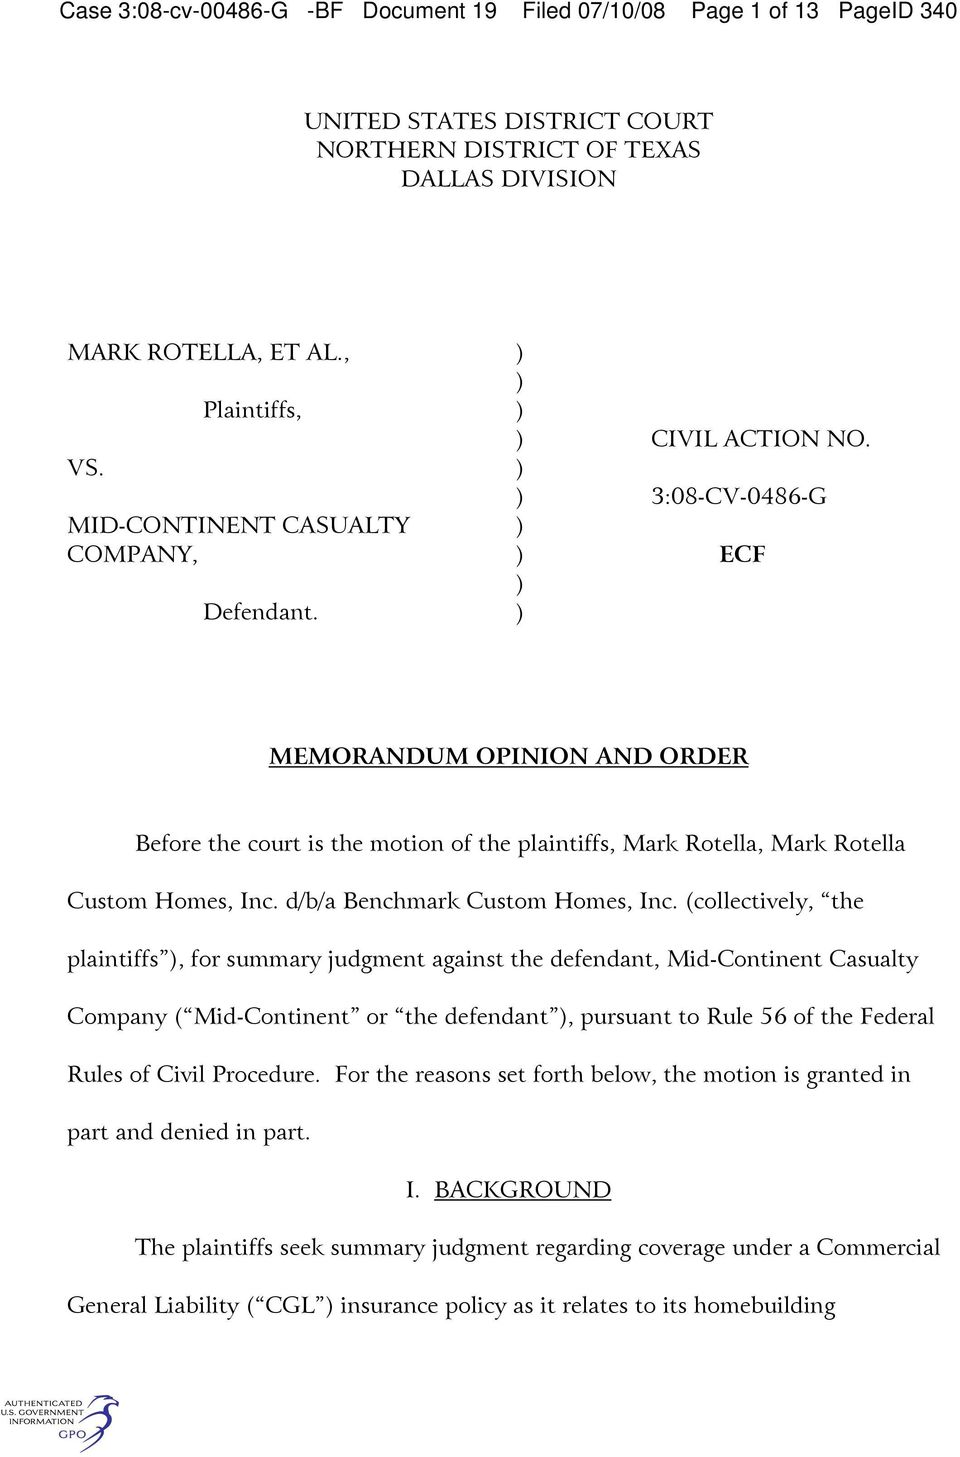 3:08-CV-0486-G ECF MEMORANDUM OPINION AND ORDER Before the court is the motion of the plaintiffs, Mark Rotella, Mark Rotella Custom Homes, Inc. d/b/a Benchmark Custom Homes, Inc.